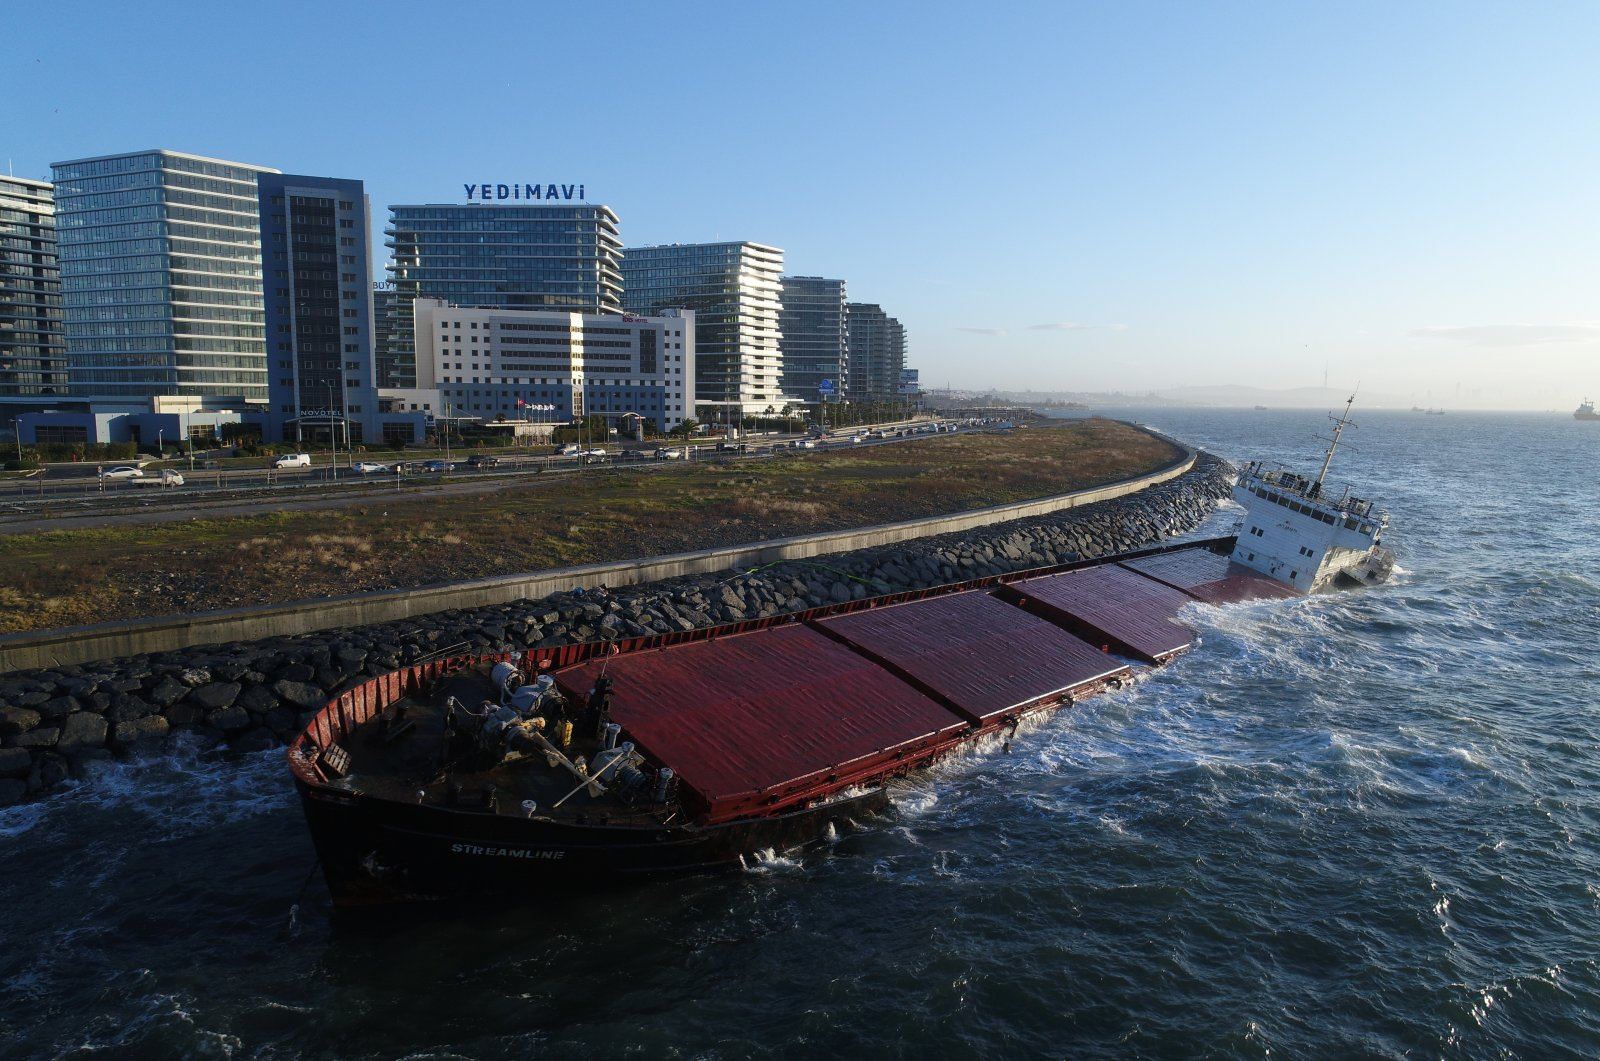 A cargo ship that ran aground on Jan. 29,2021 is seen in the aftermath of a storm, off the coast of Zeytinburnu district, Istanbul, Turkey. (IHA Photo)